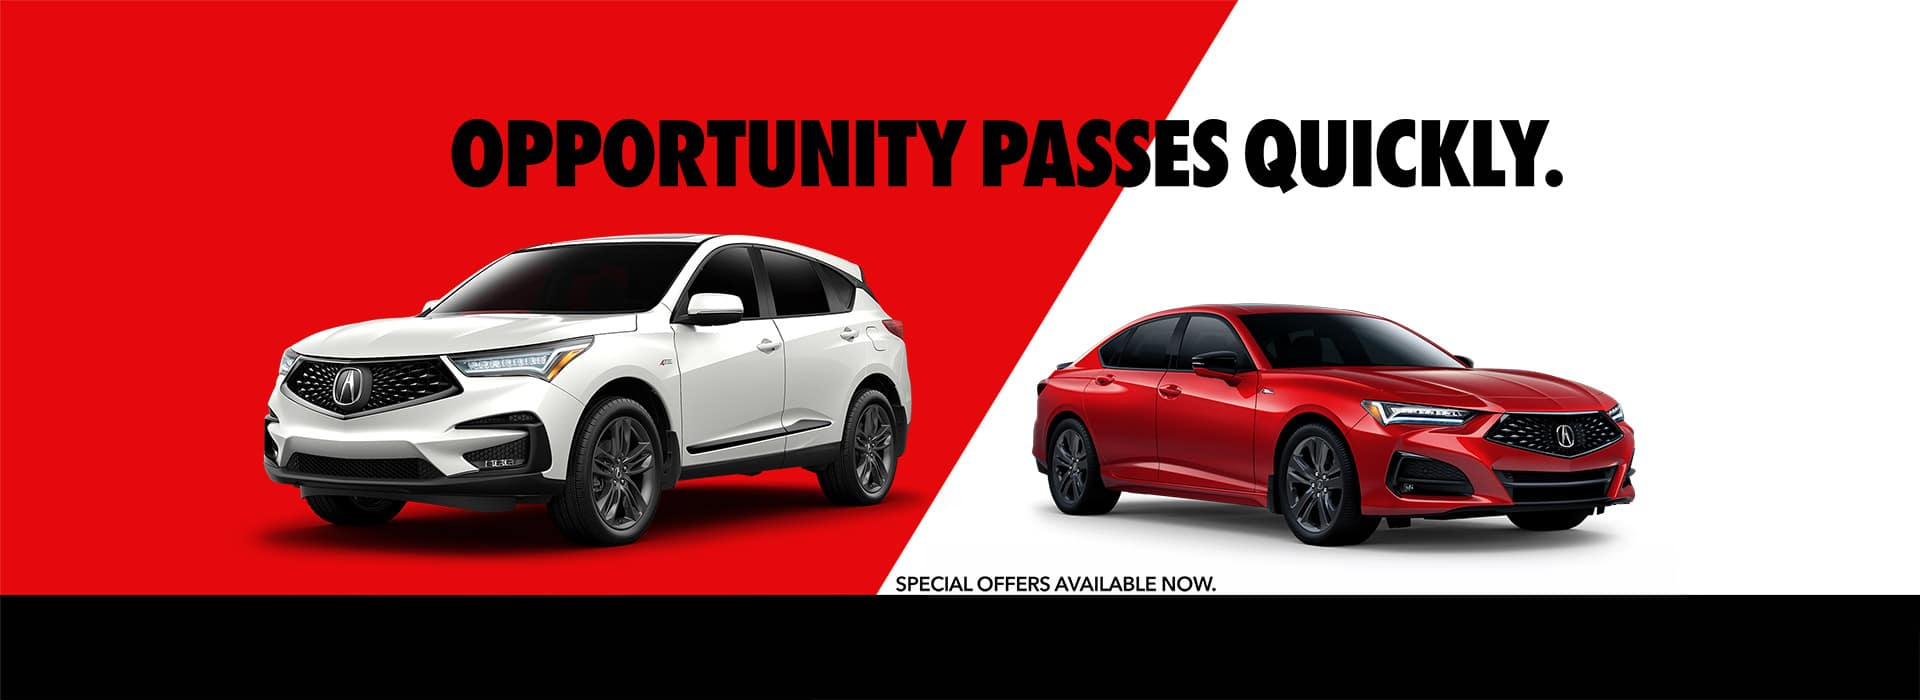 Opportunity Passes Quickly